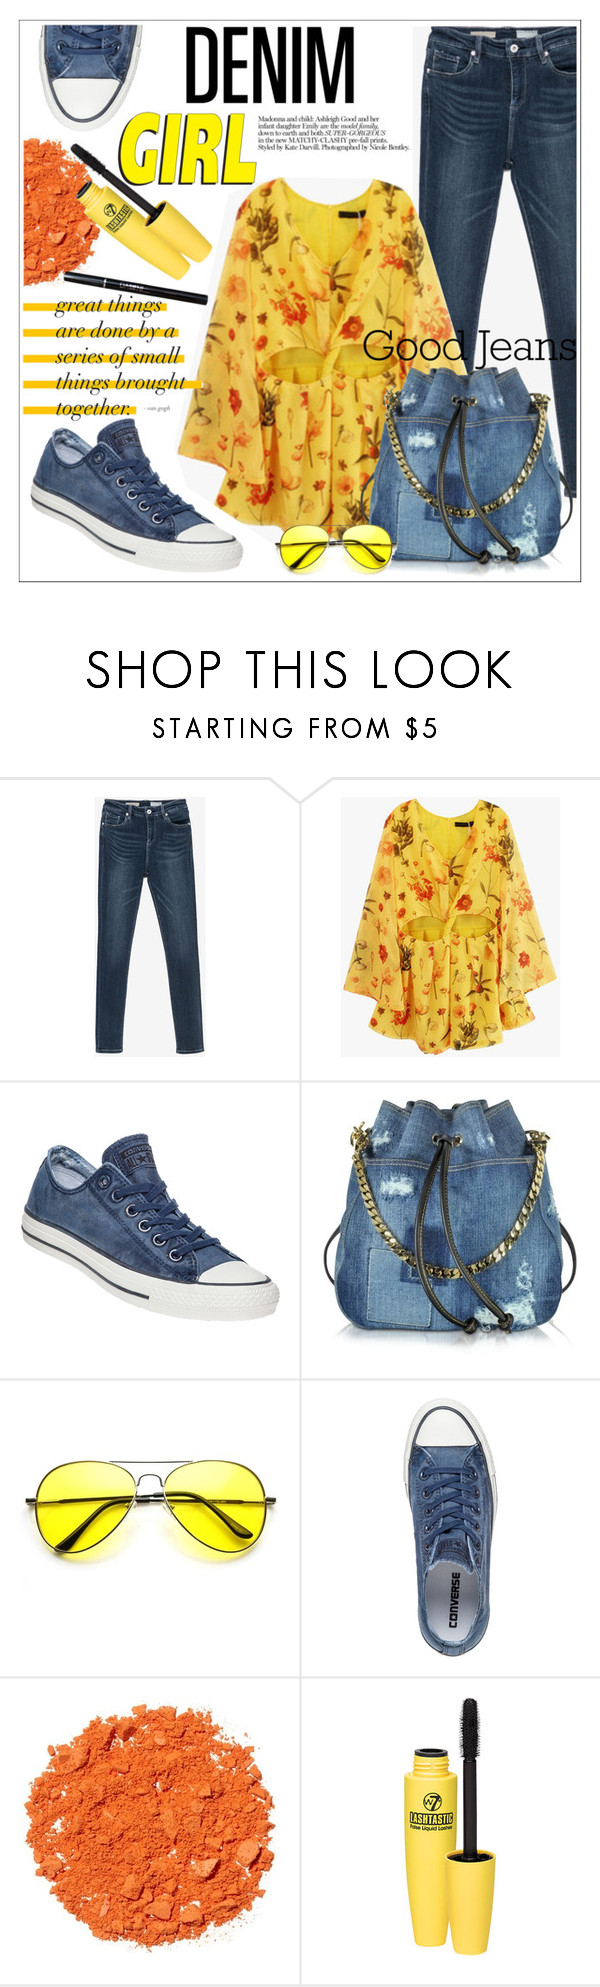 """Distressed Denim"" by allanaaa11 ❤ liked on Polyvore featuring Converse, Dsquared2, Illamasqua, women's clothing, women, female, woman, misses and juniors"